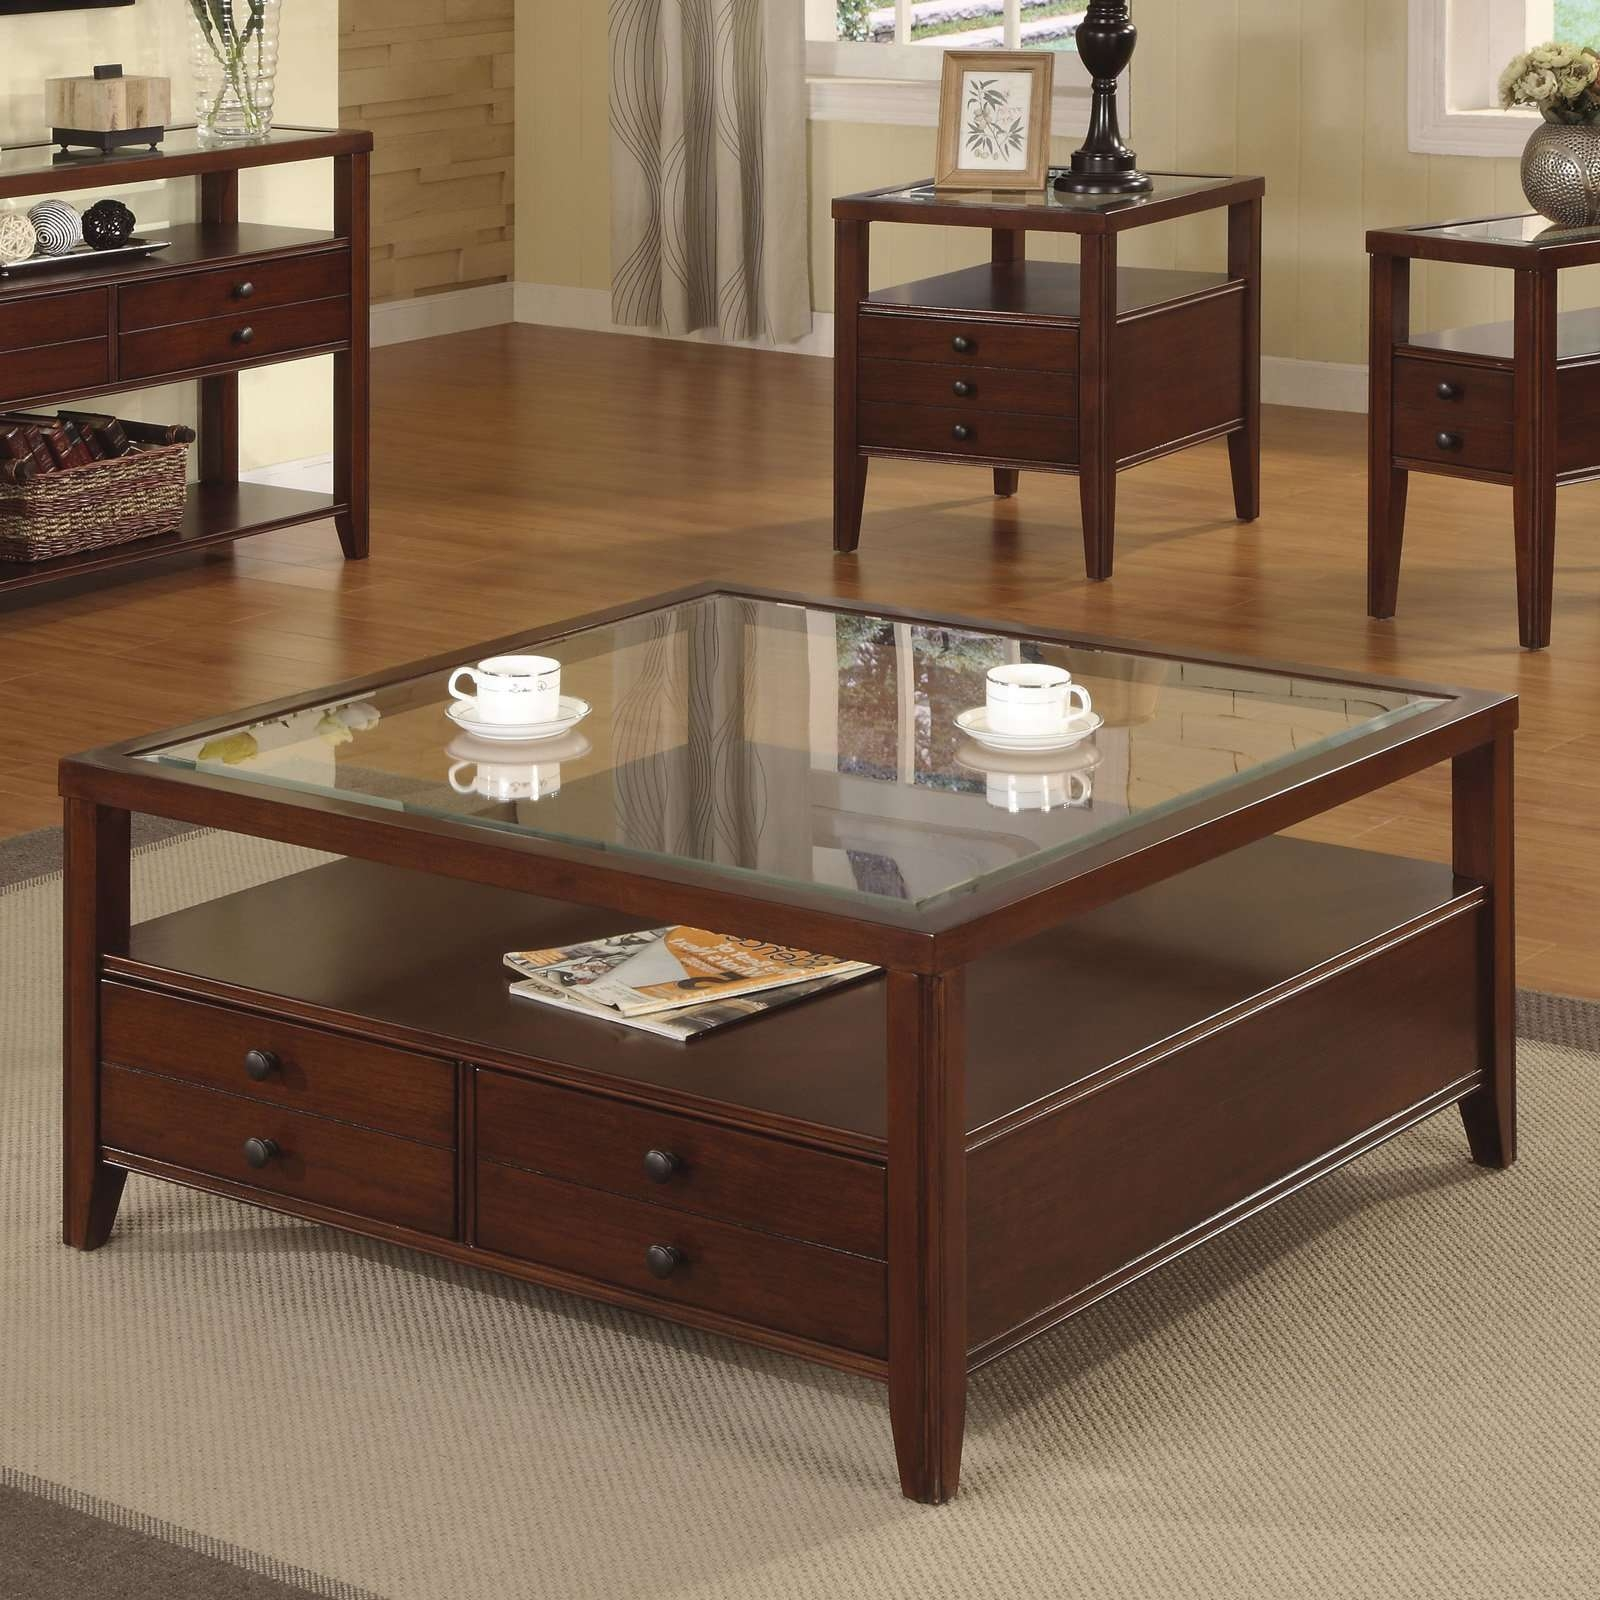 Well Liked Glass Coffee Tables With Storage With Coffee Tables : Rectangle Coffee Table With Storage Cute Of Rustic (View 9 of 20)